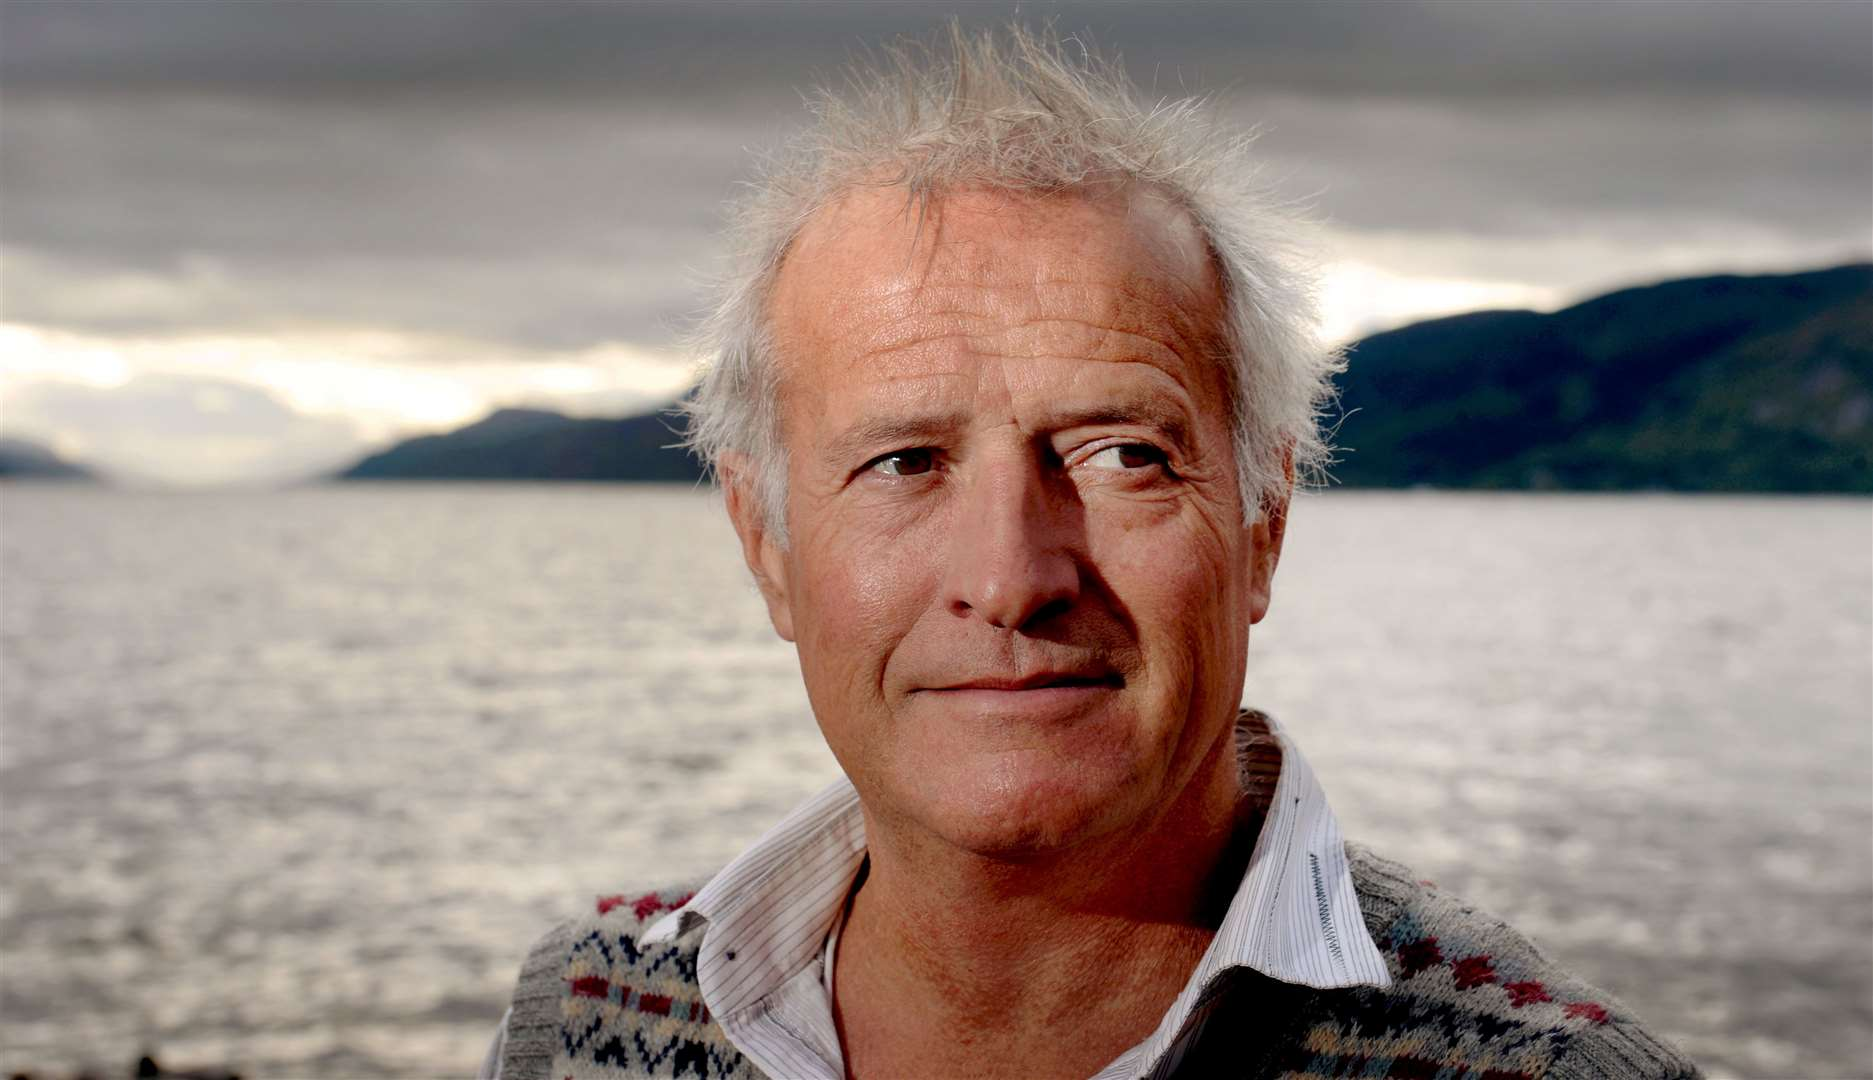 Steve Feltham has set a world record for the longest continuous vigil of looking for Nessie.